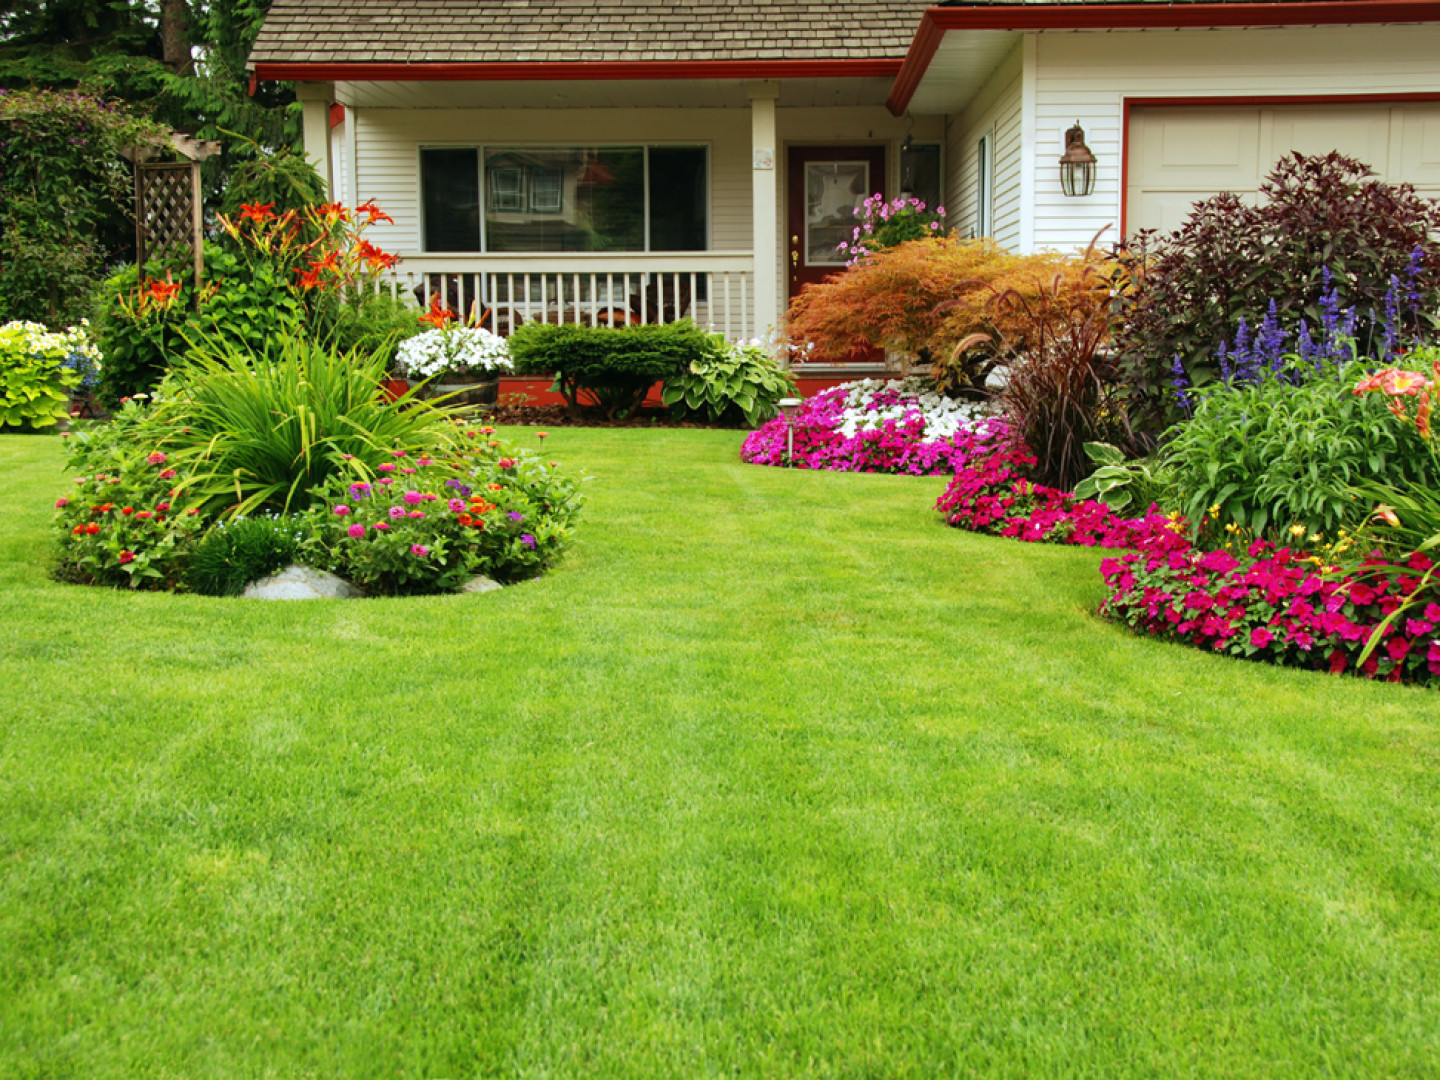 Improve Your Curb Appeal With a New Landscape Design